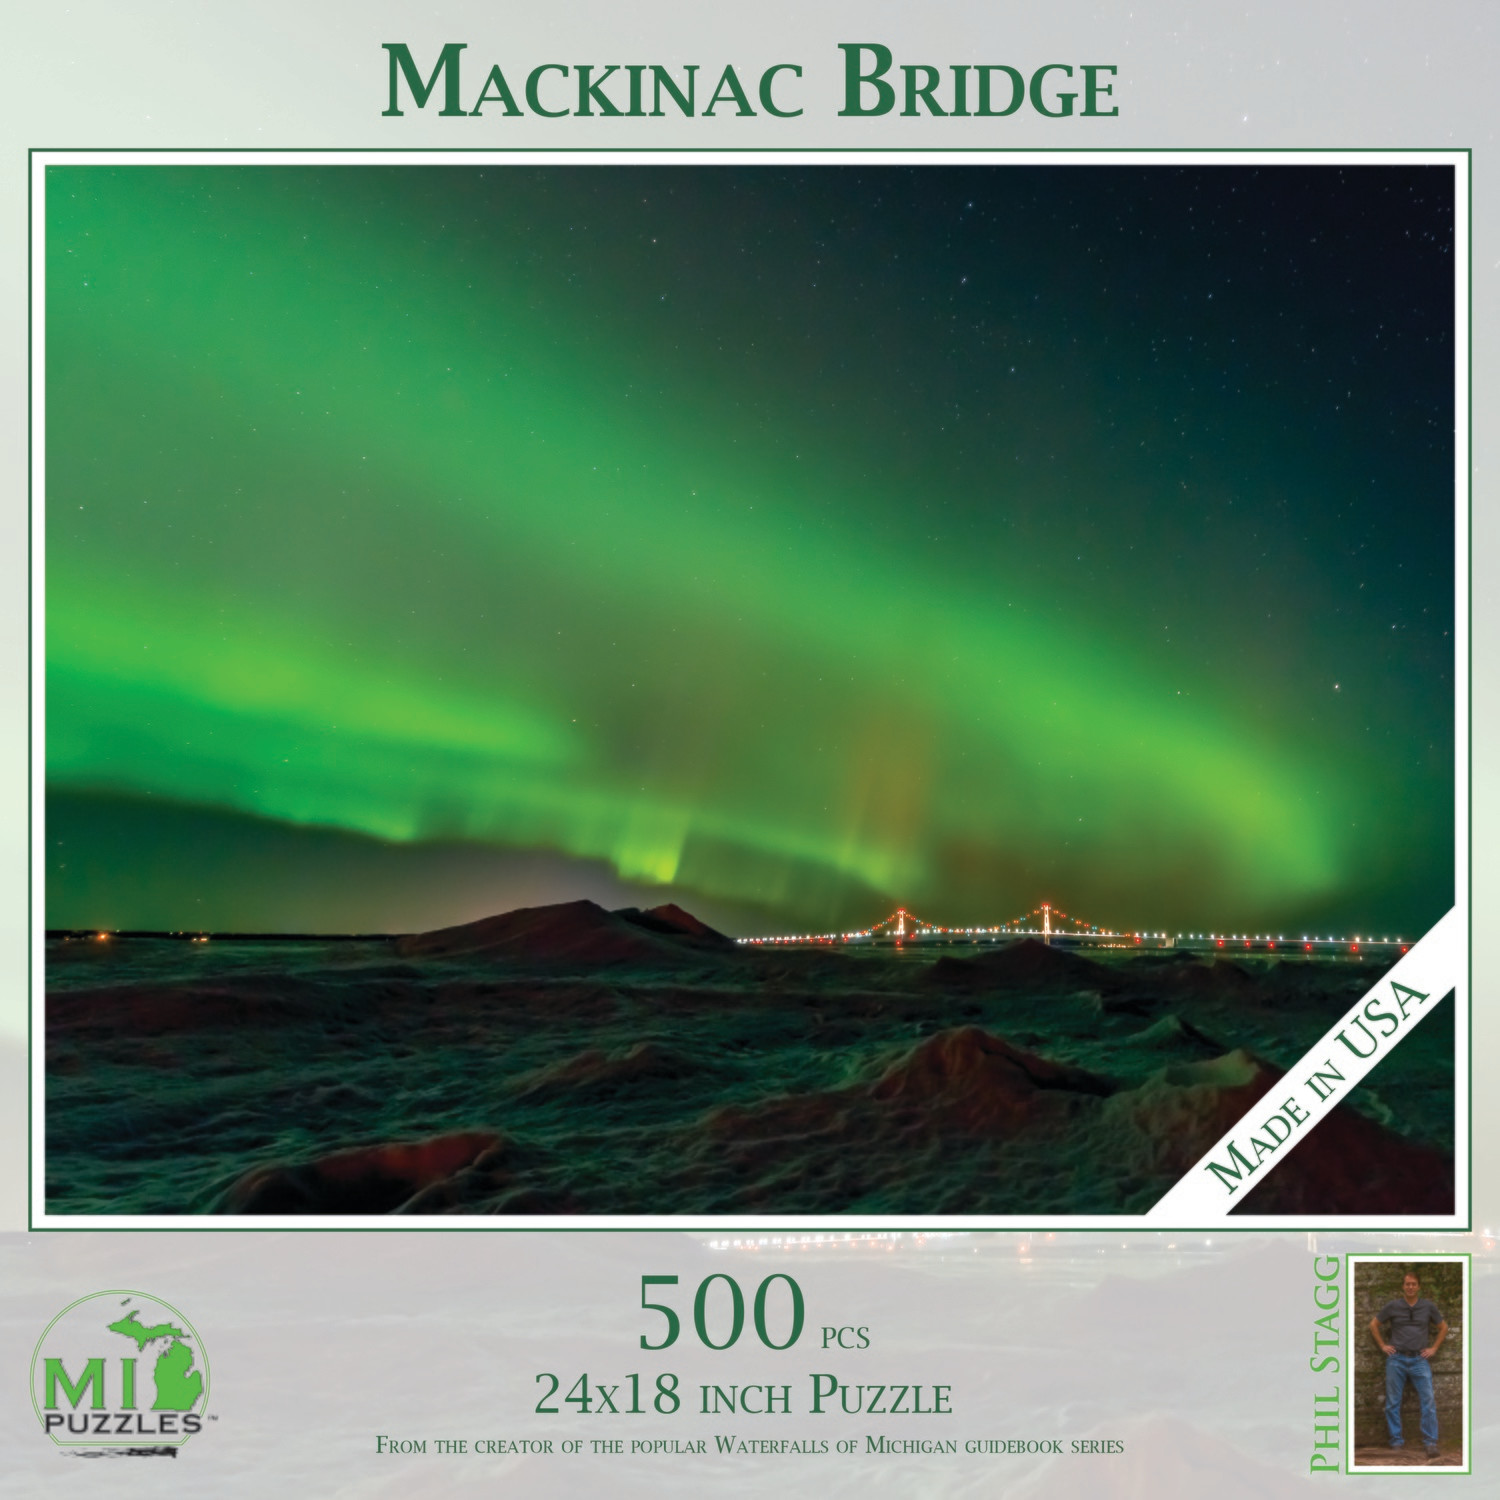 Mackinac Bridge with Northern Lights